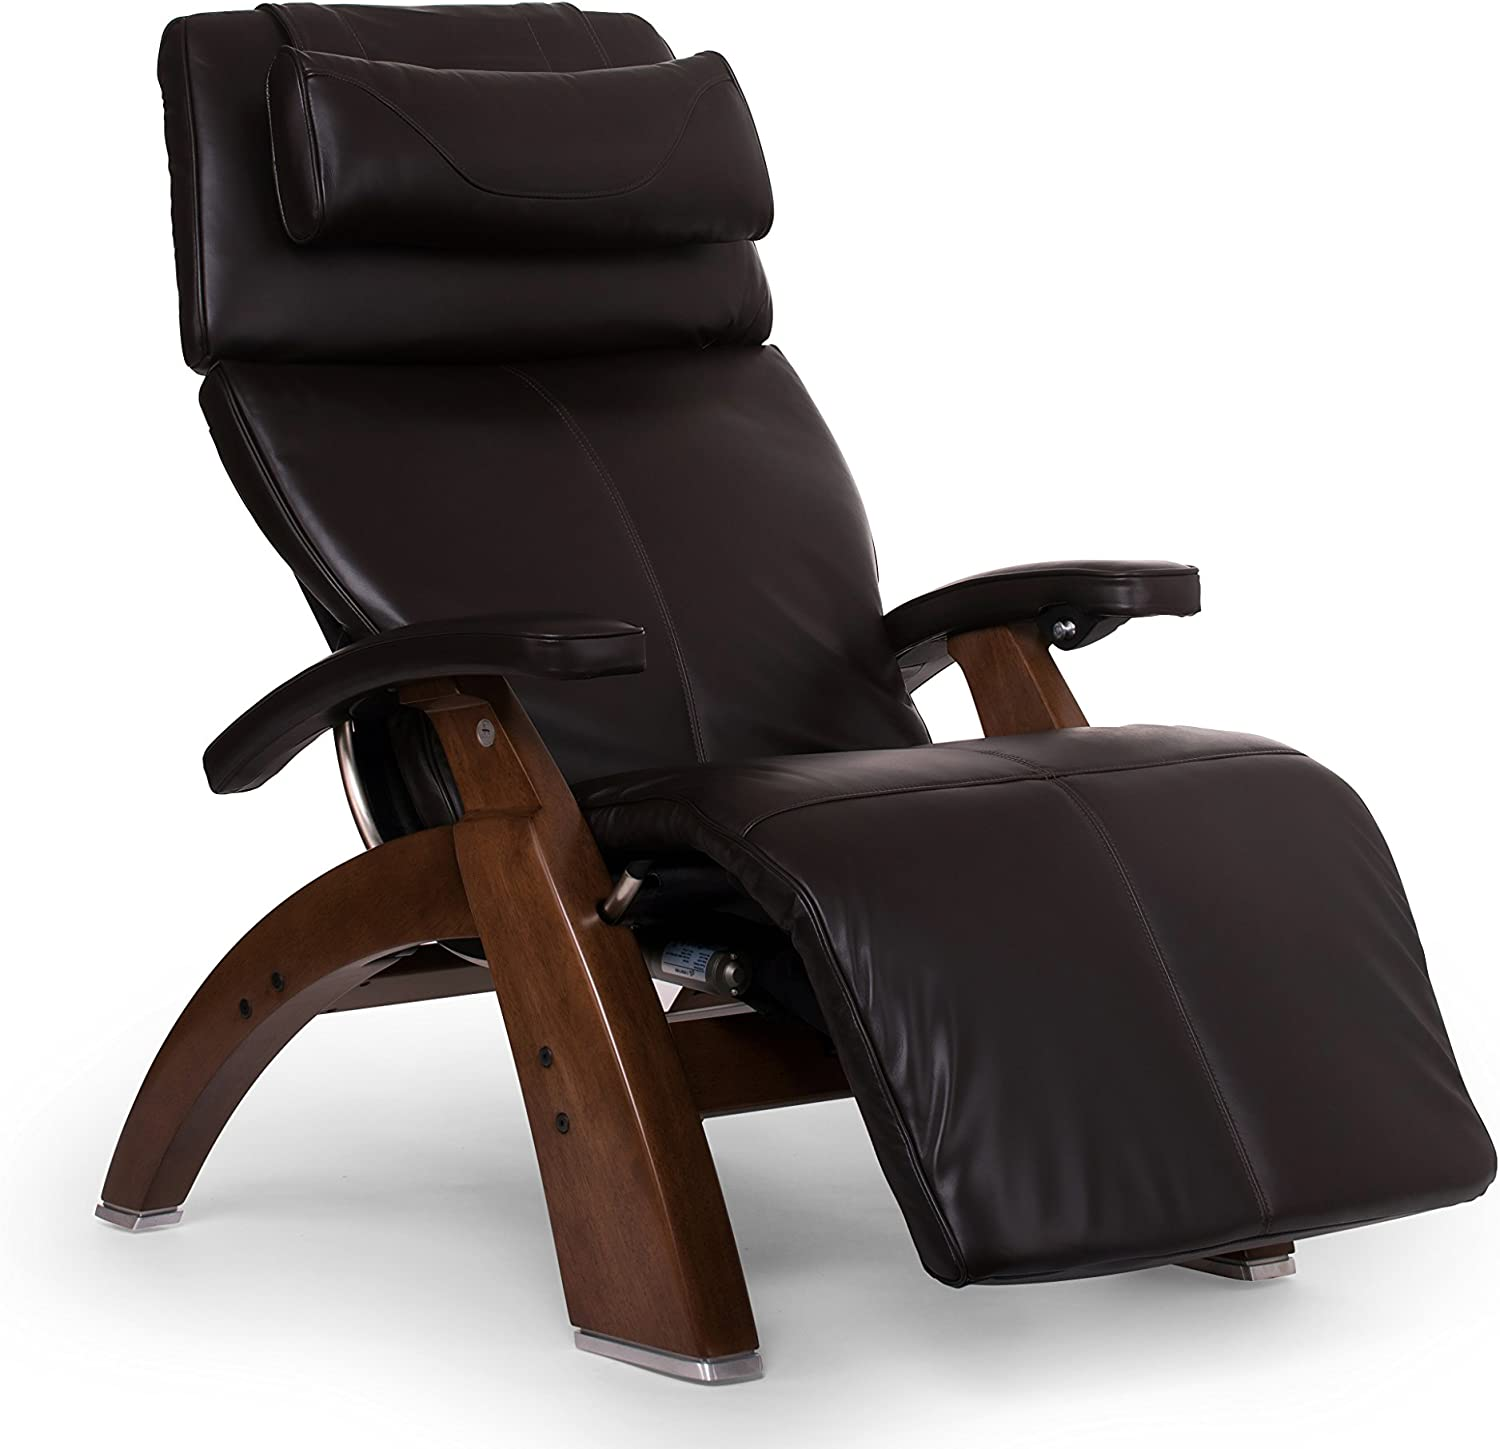 "Perfect Chair ""PC-610 Omni-Motion Classic"" Premium Full Grain Leather Zero Gravity Recliner, Espresso"